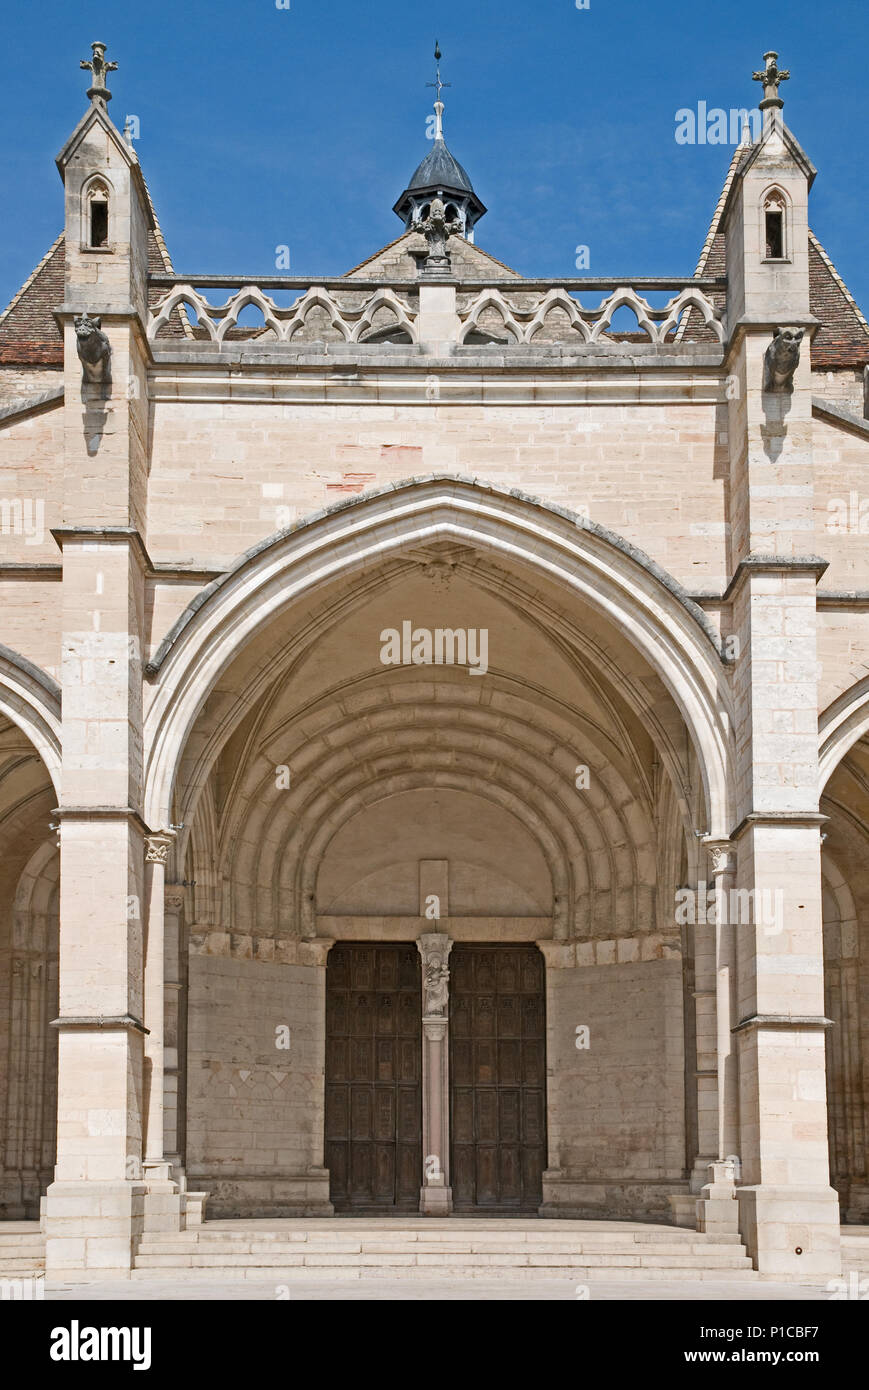 Entrance porch to Cathedral of Notre Dame or Basilique Collégiale Notre Dame Beaune France built in Romanesque and Gothic styles 11th to 15th century Stock Photo